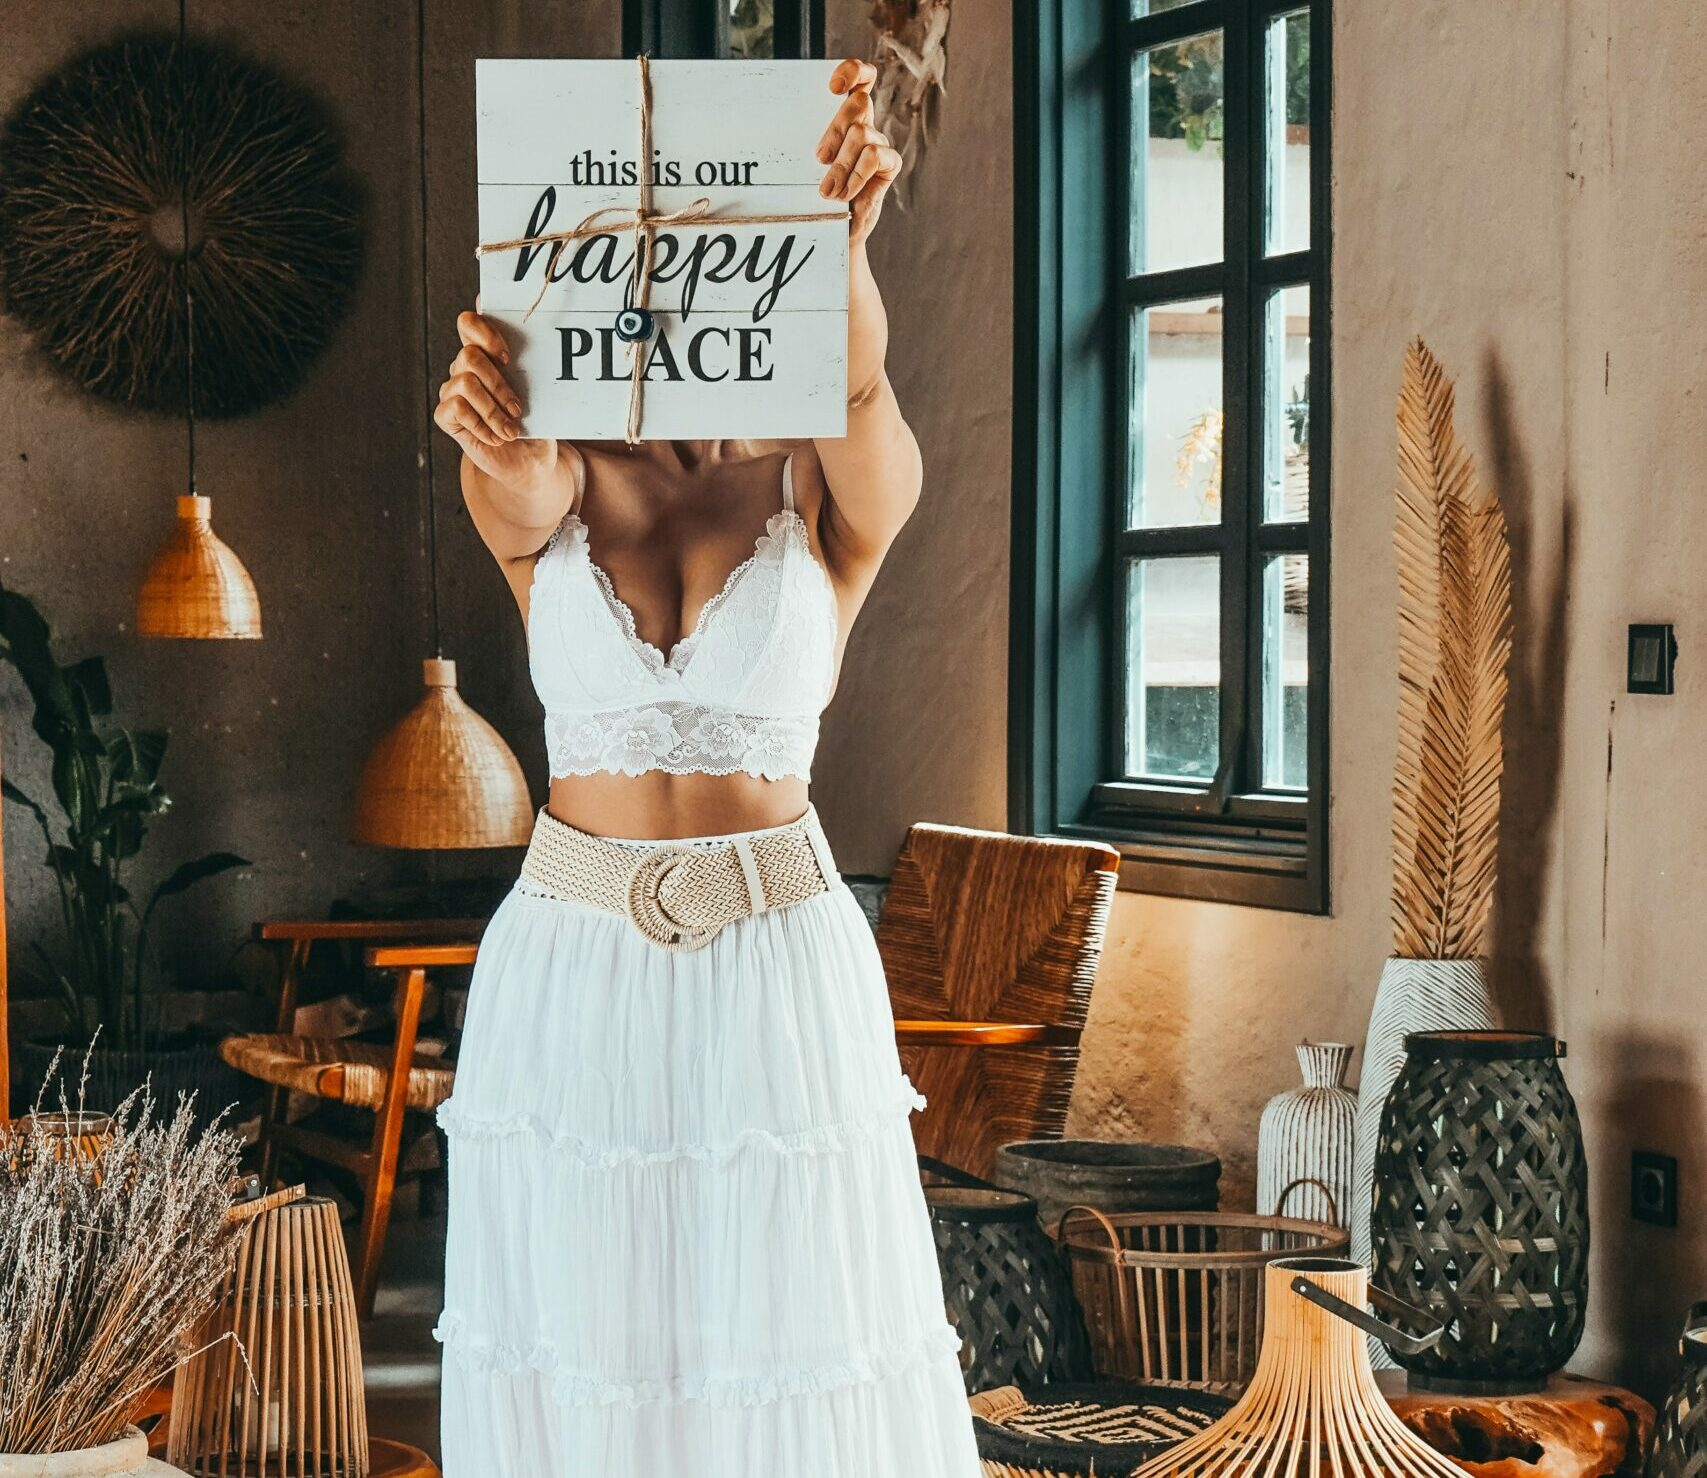 """A woman in a white dress holding up a sign that says, """"This is our happy place."""""""